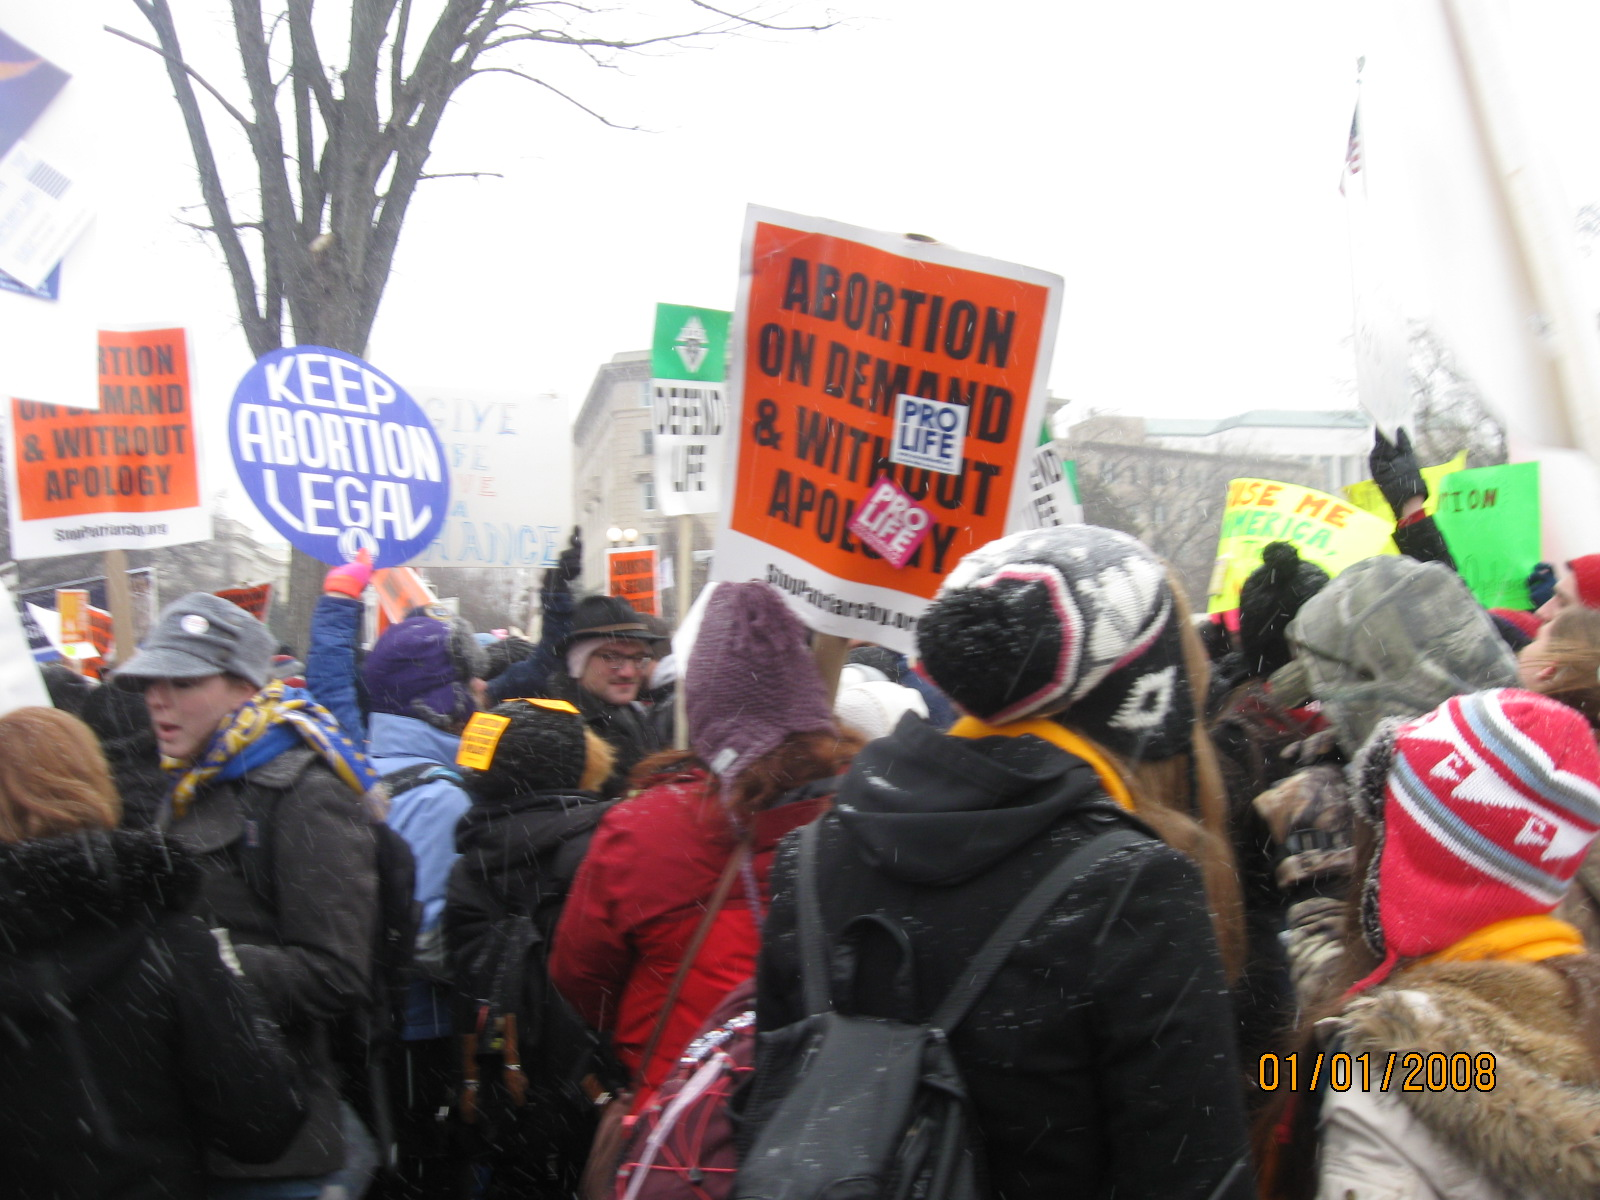 half-million-pro-lifers-meet-20-pro-abortionists